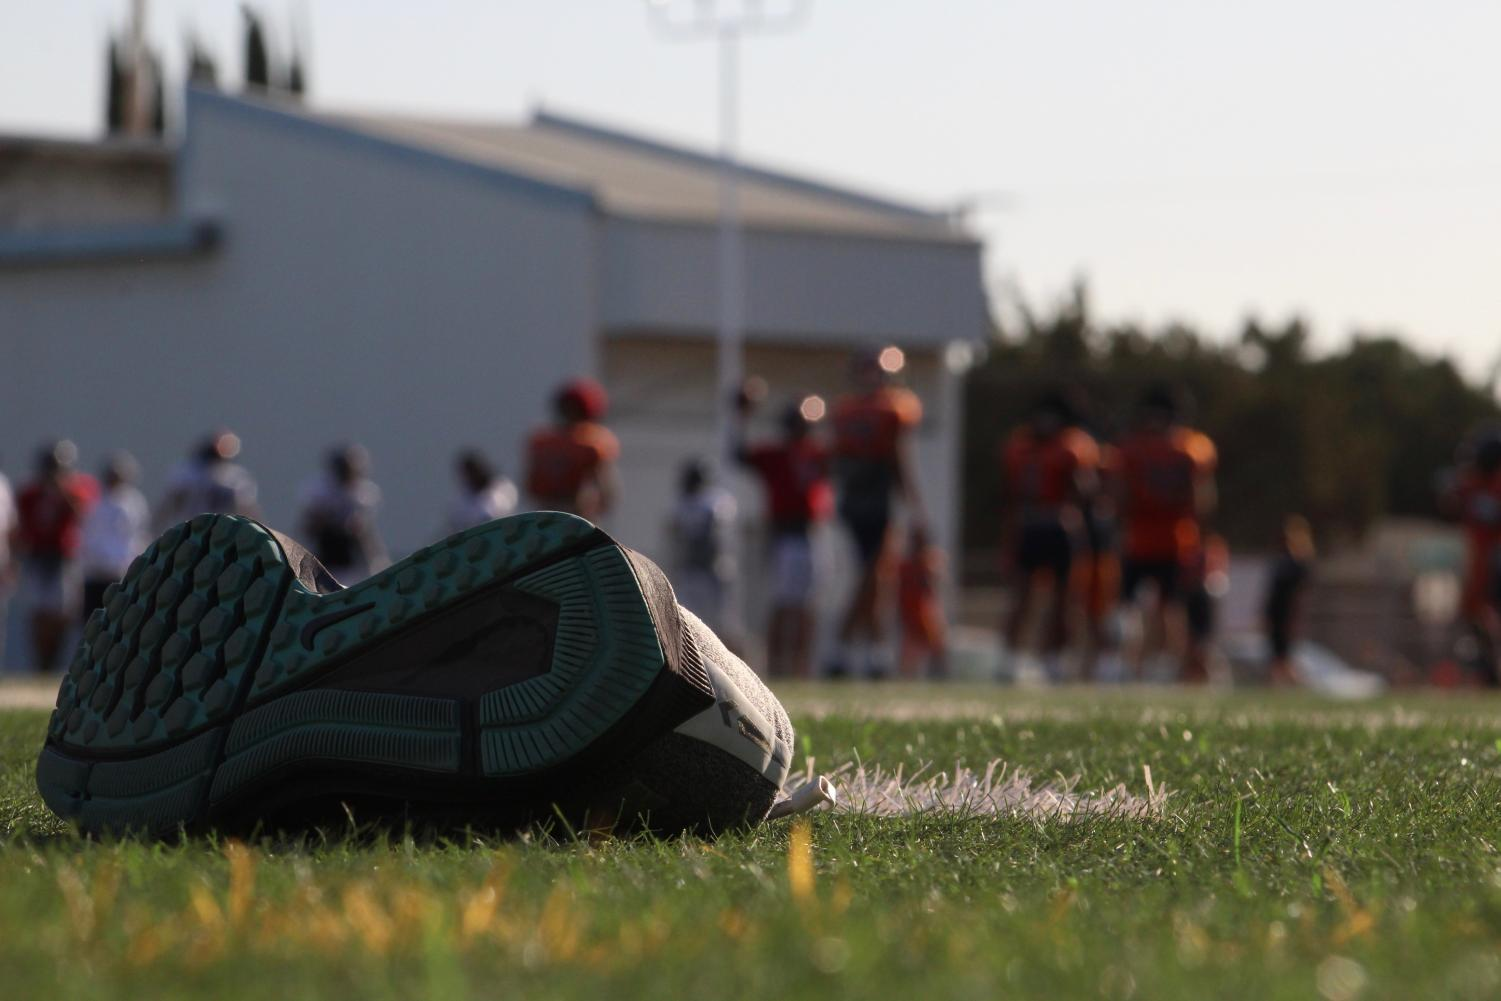 Football continues to practice with shoes off after the loss at Chabot.